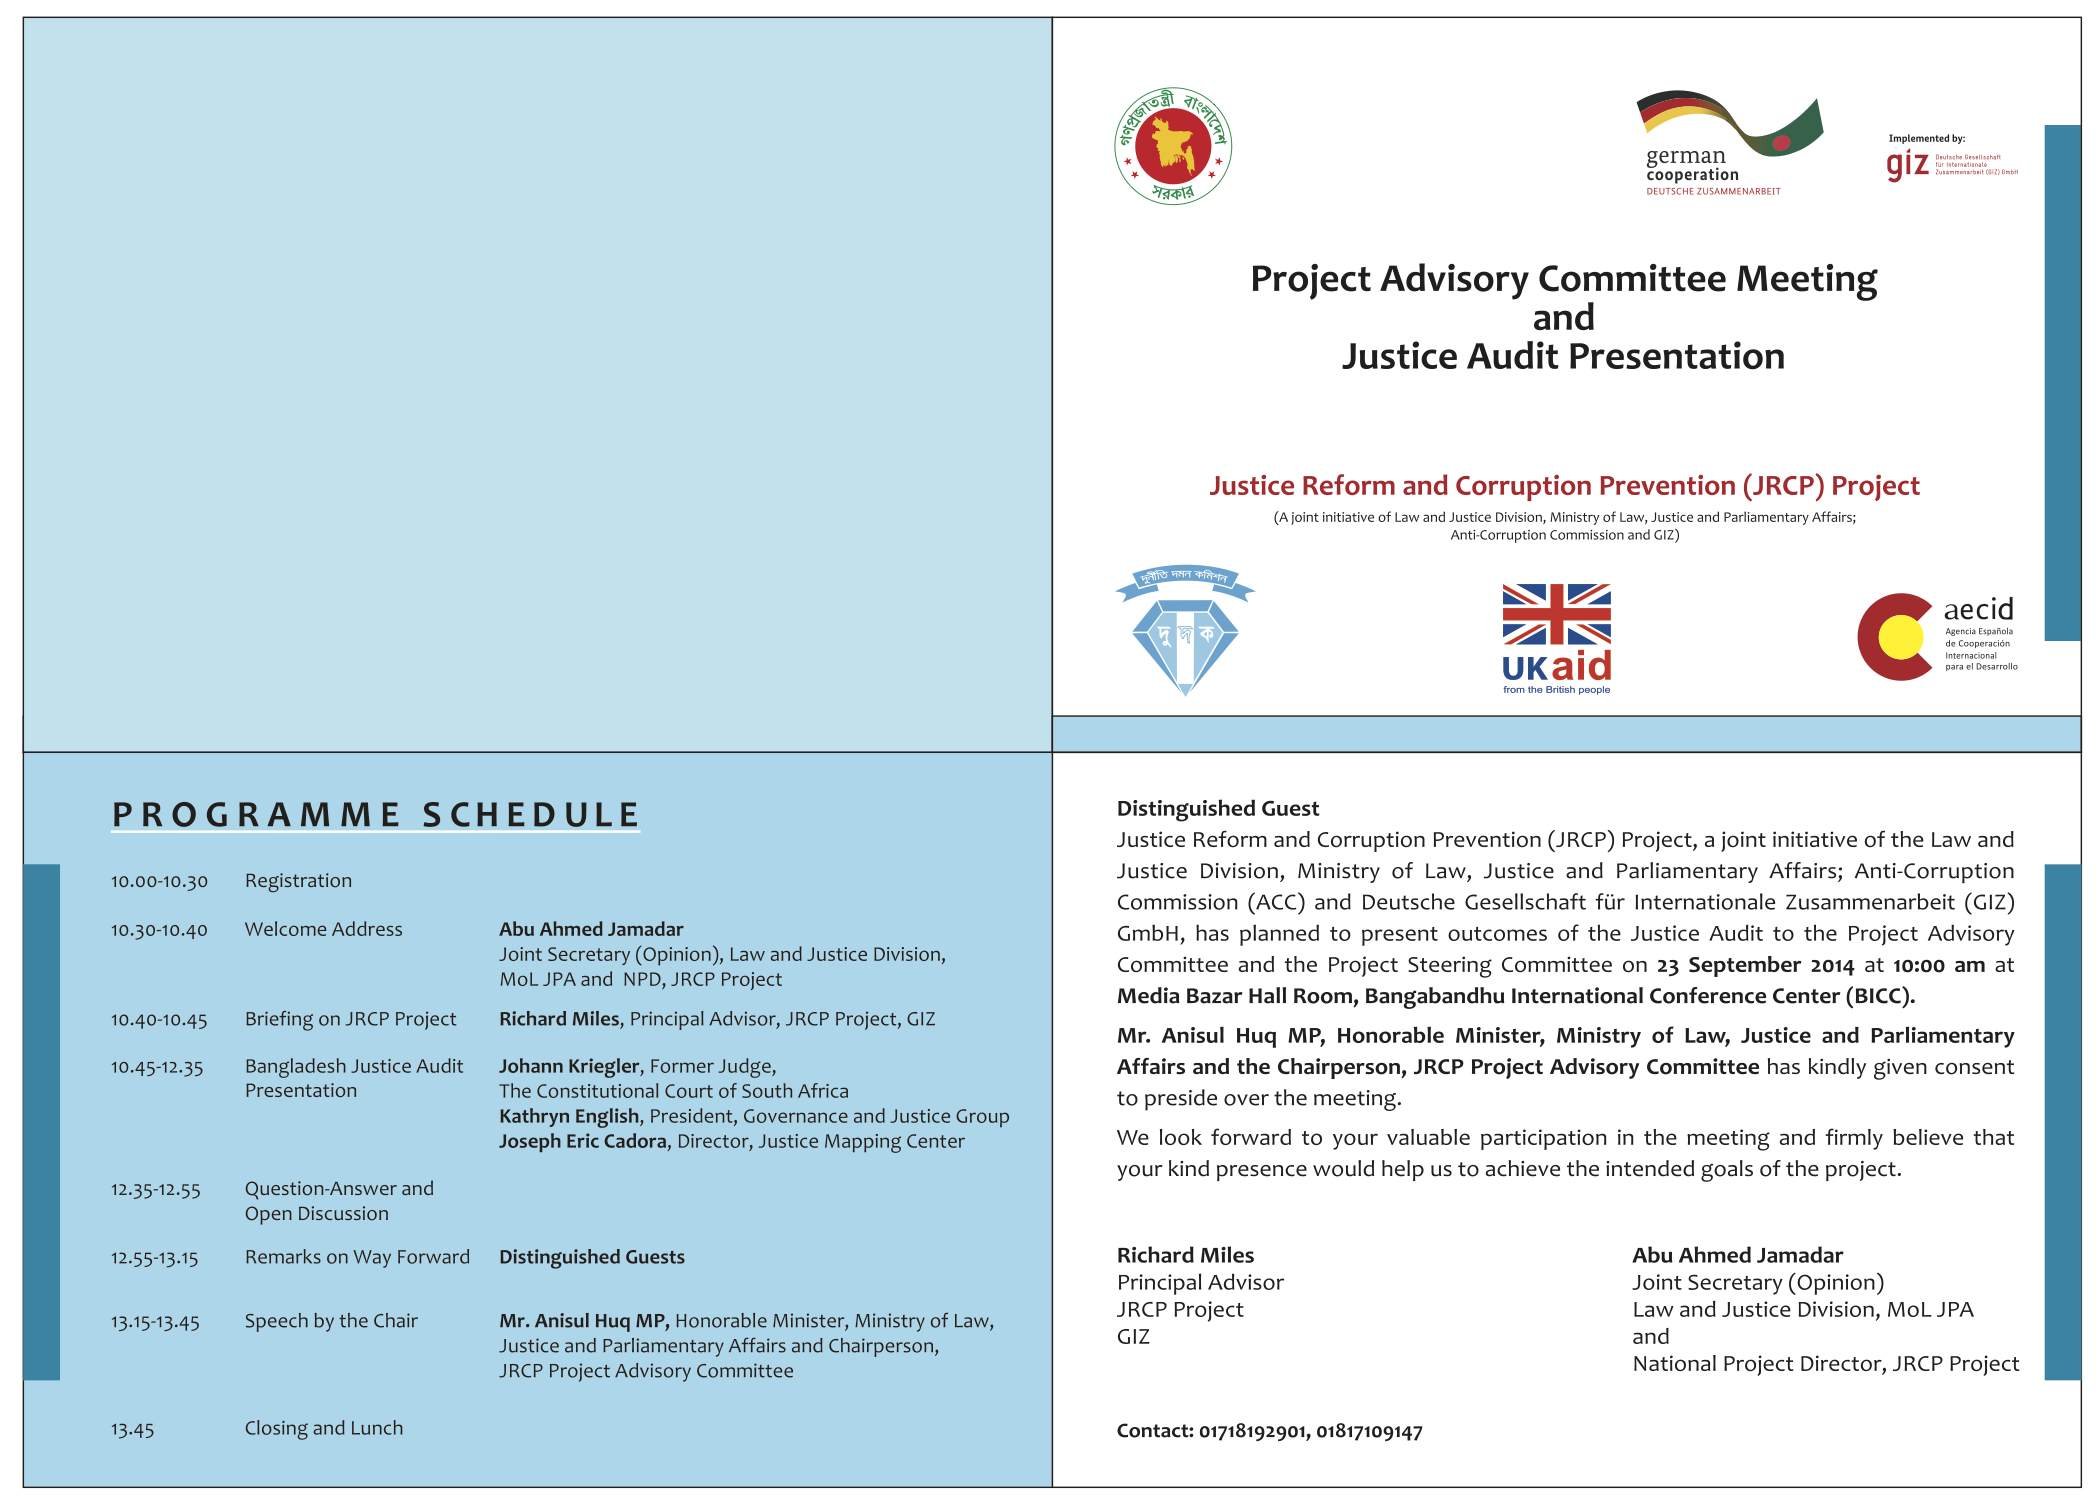 The invitation card to the Justice Audit presentation.